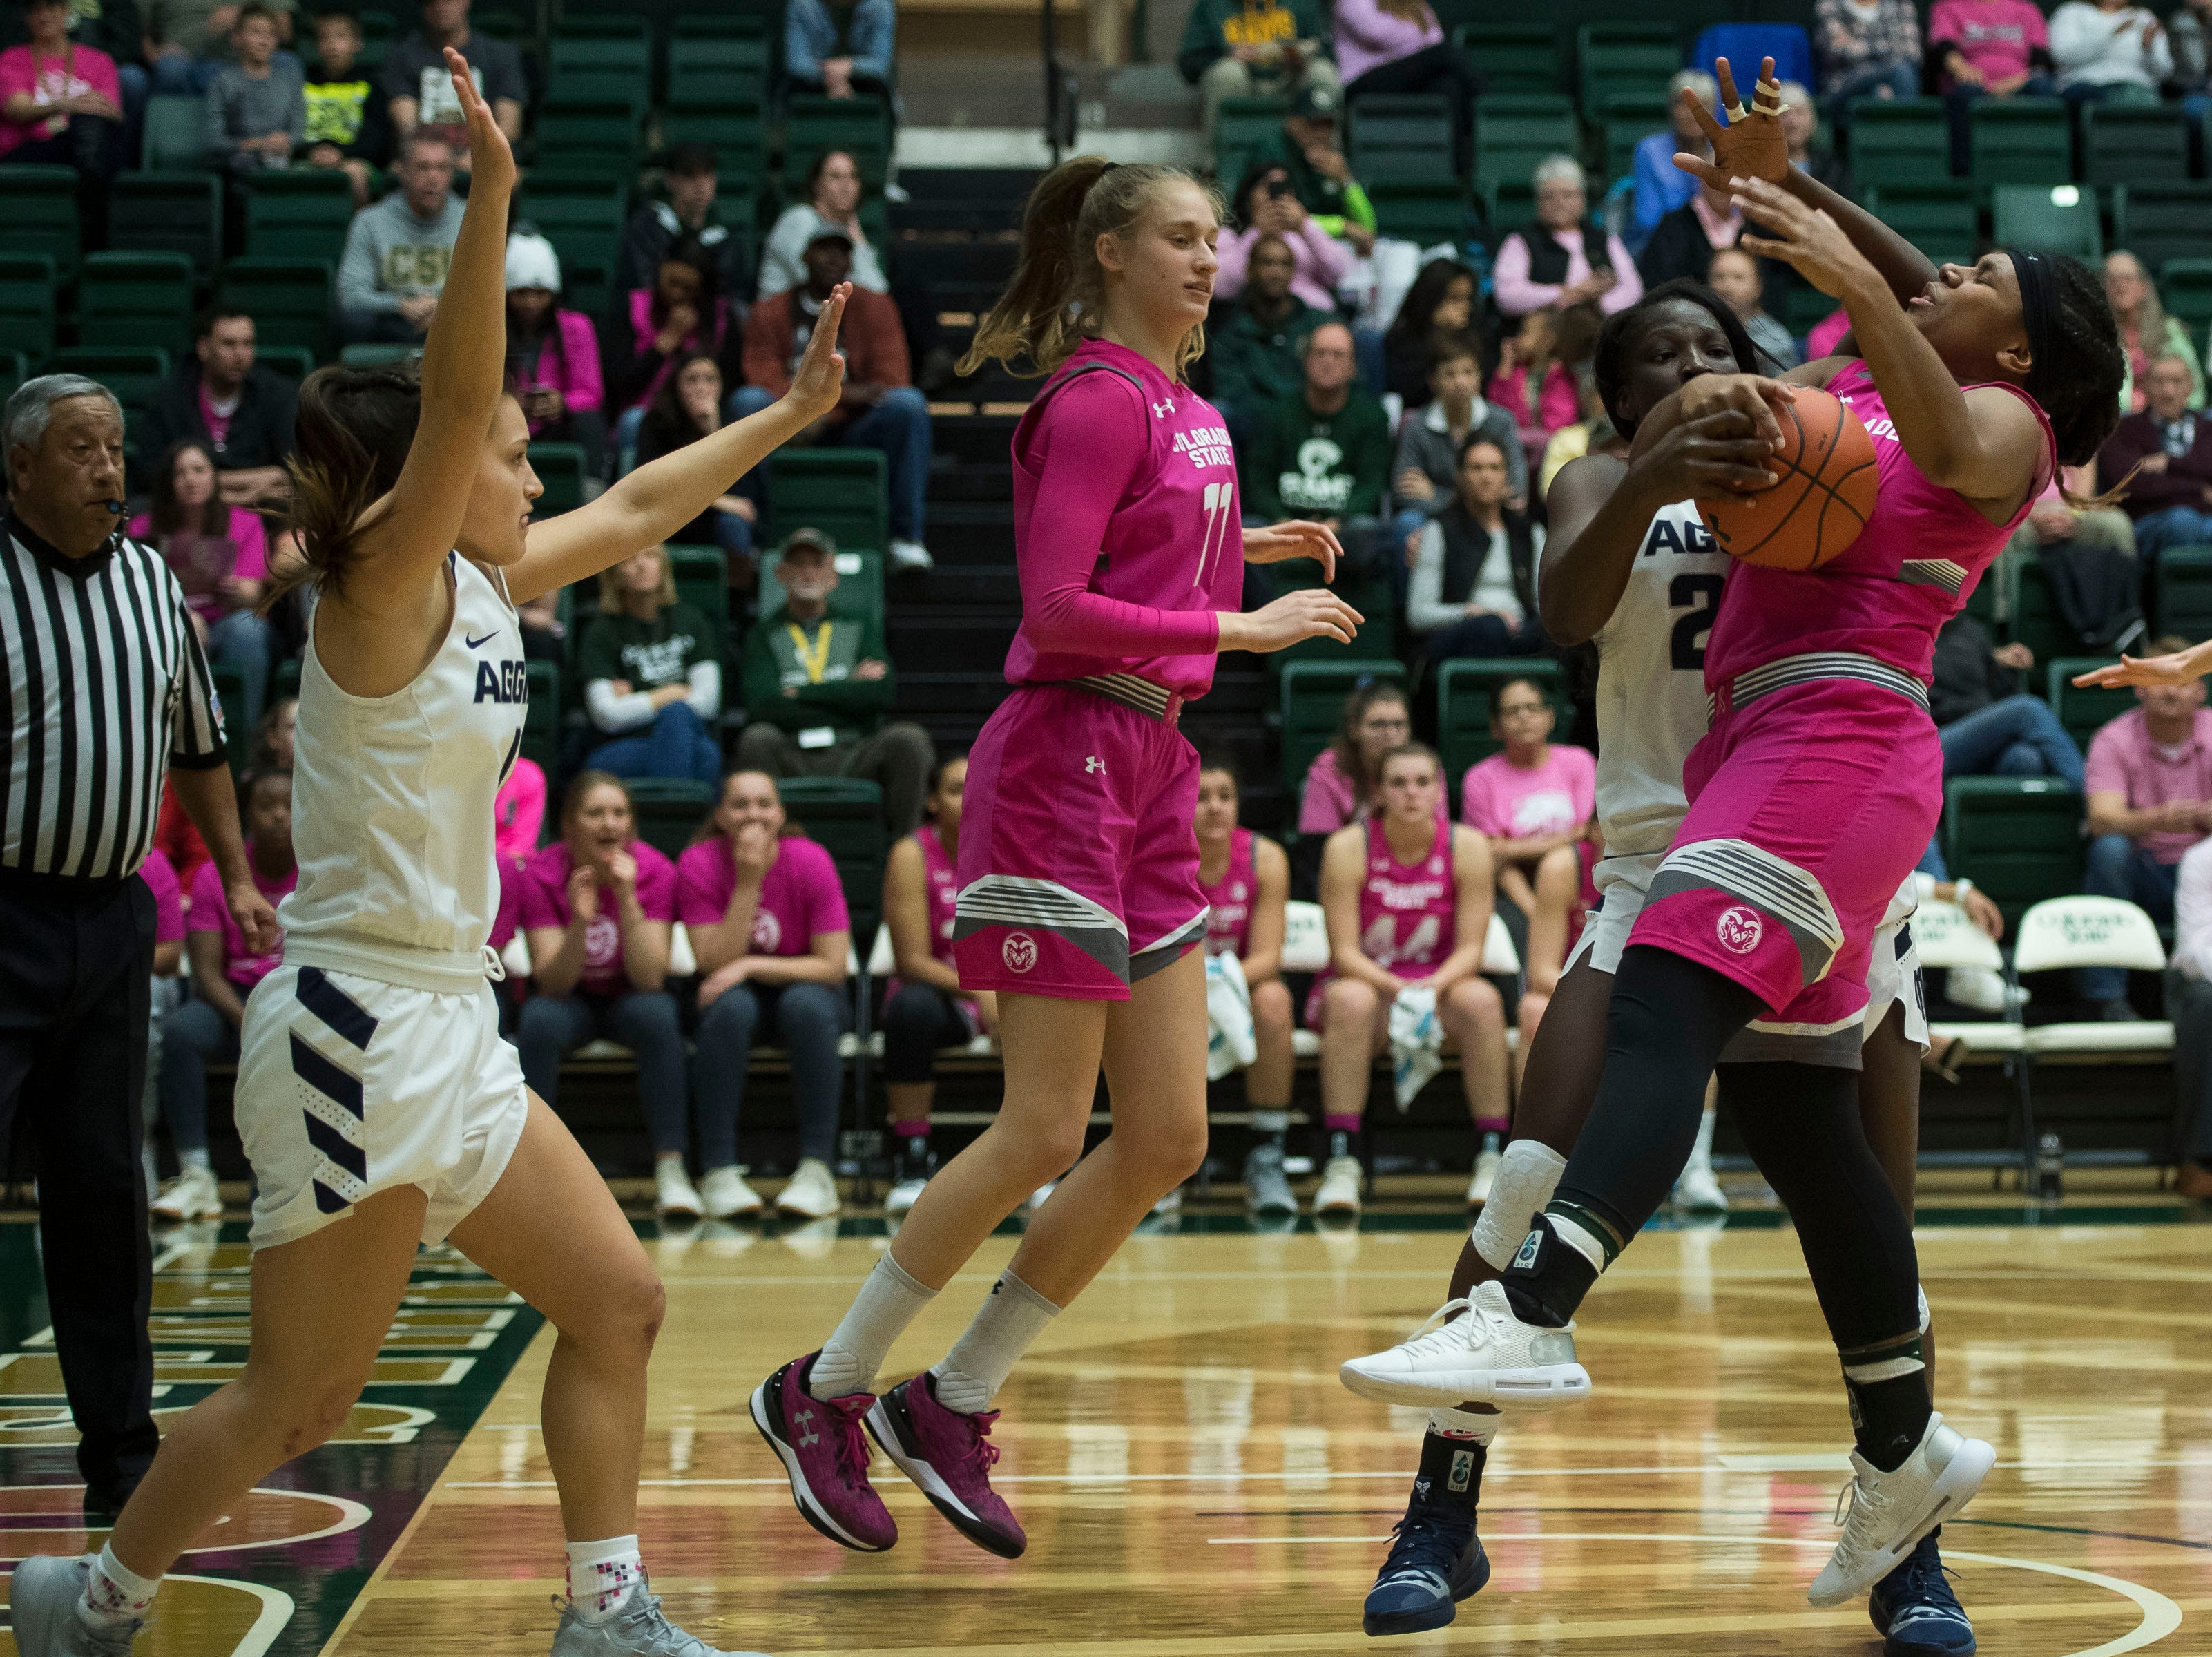 Colorado State University sophomore guard Grace Colaivalu (23) has the ball knocked out by Utah State junior forward Marlene Aniambossou (24) on Saturday, Jan. 19, 2019, at Moby Arena in Fort Collins, Colo.